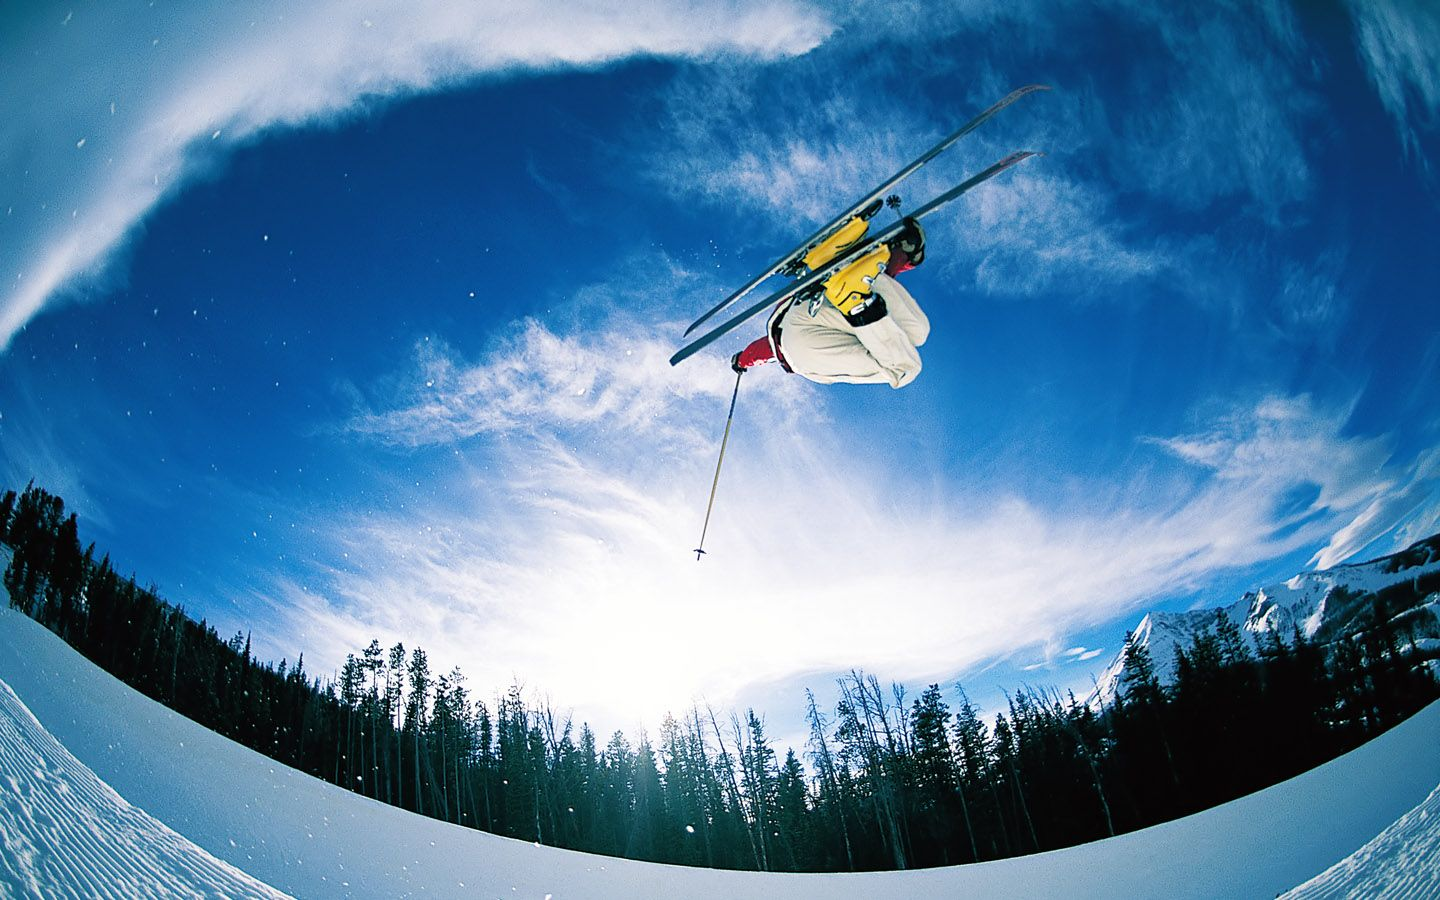 Skiing Wallpapers HD   HD Wallpapers Backgrounds of Your Choice 1440x900